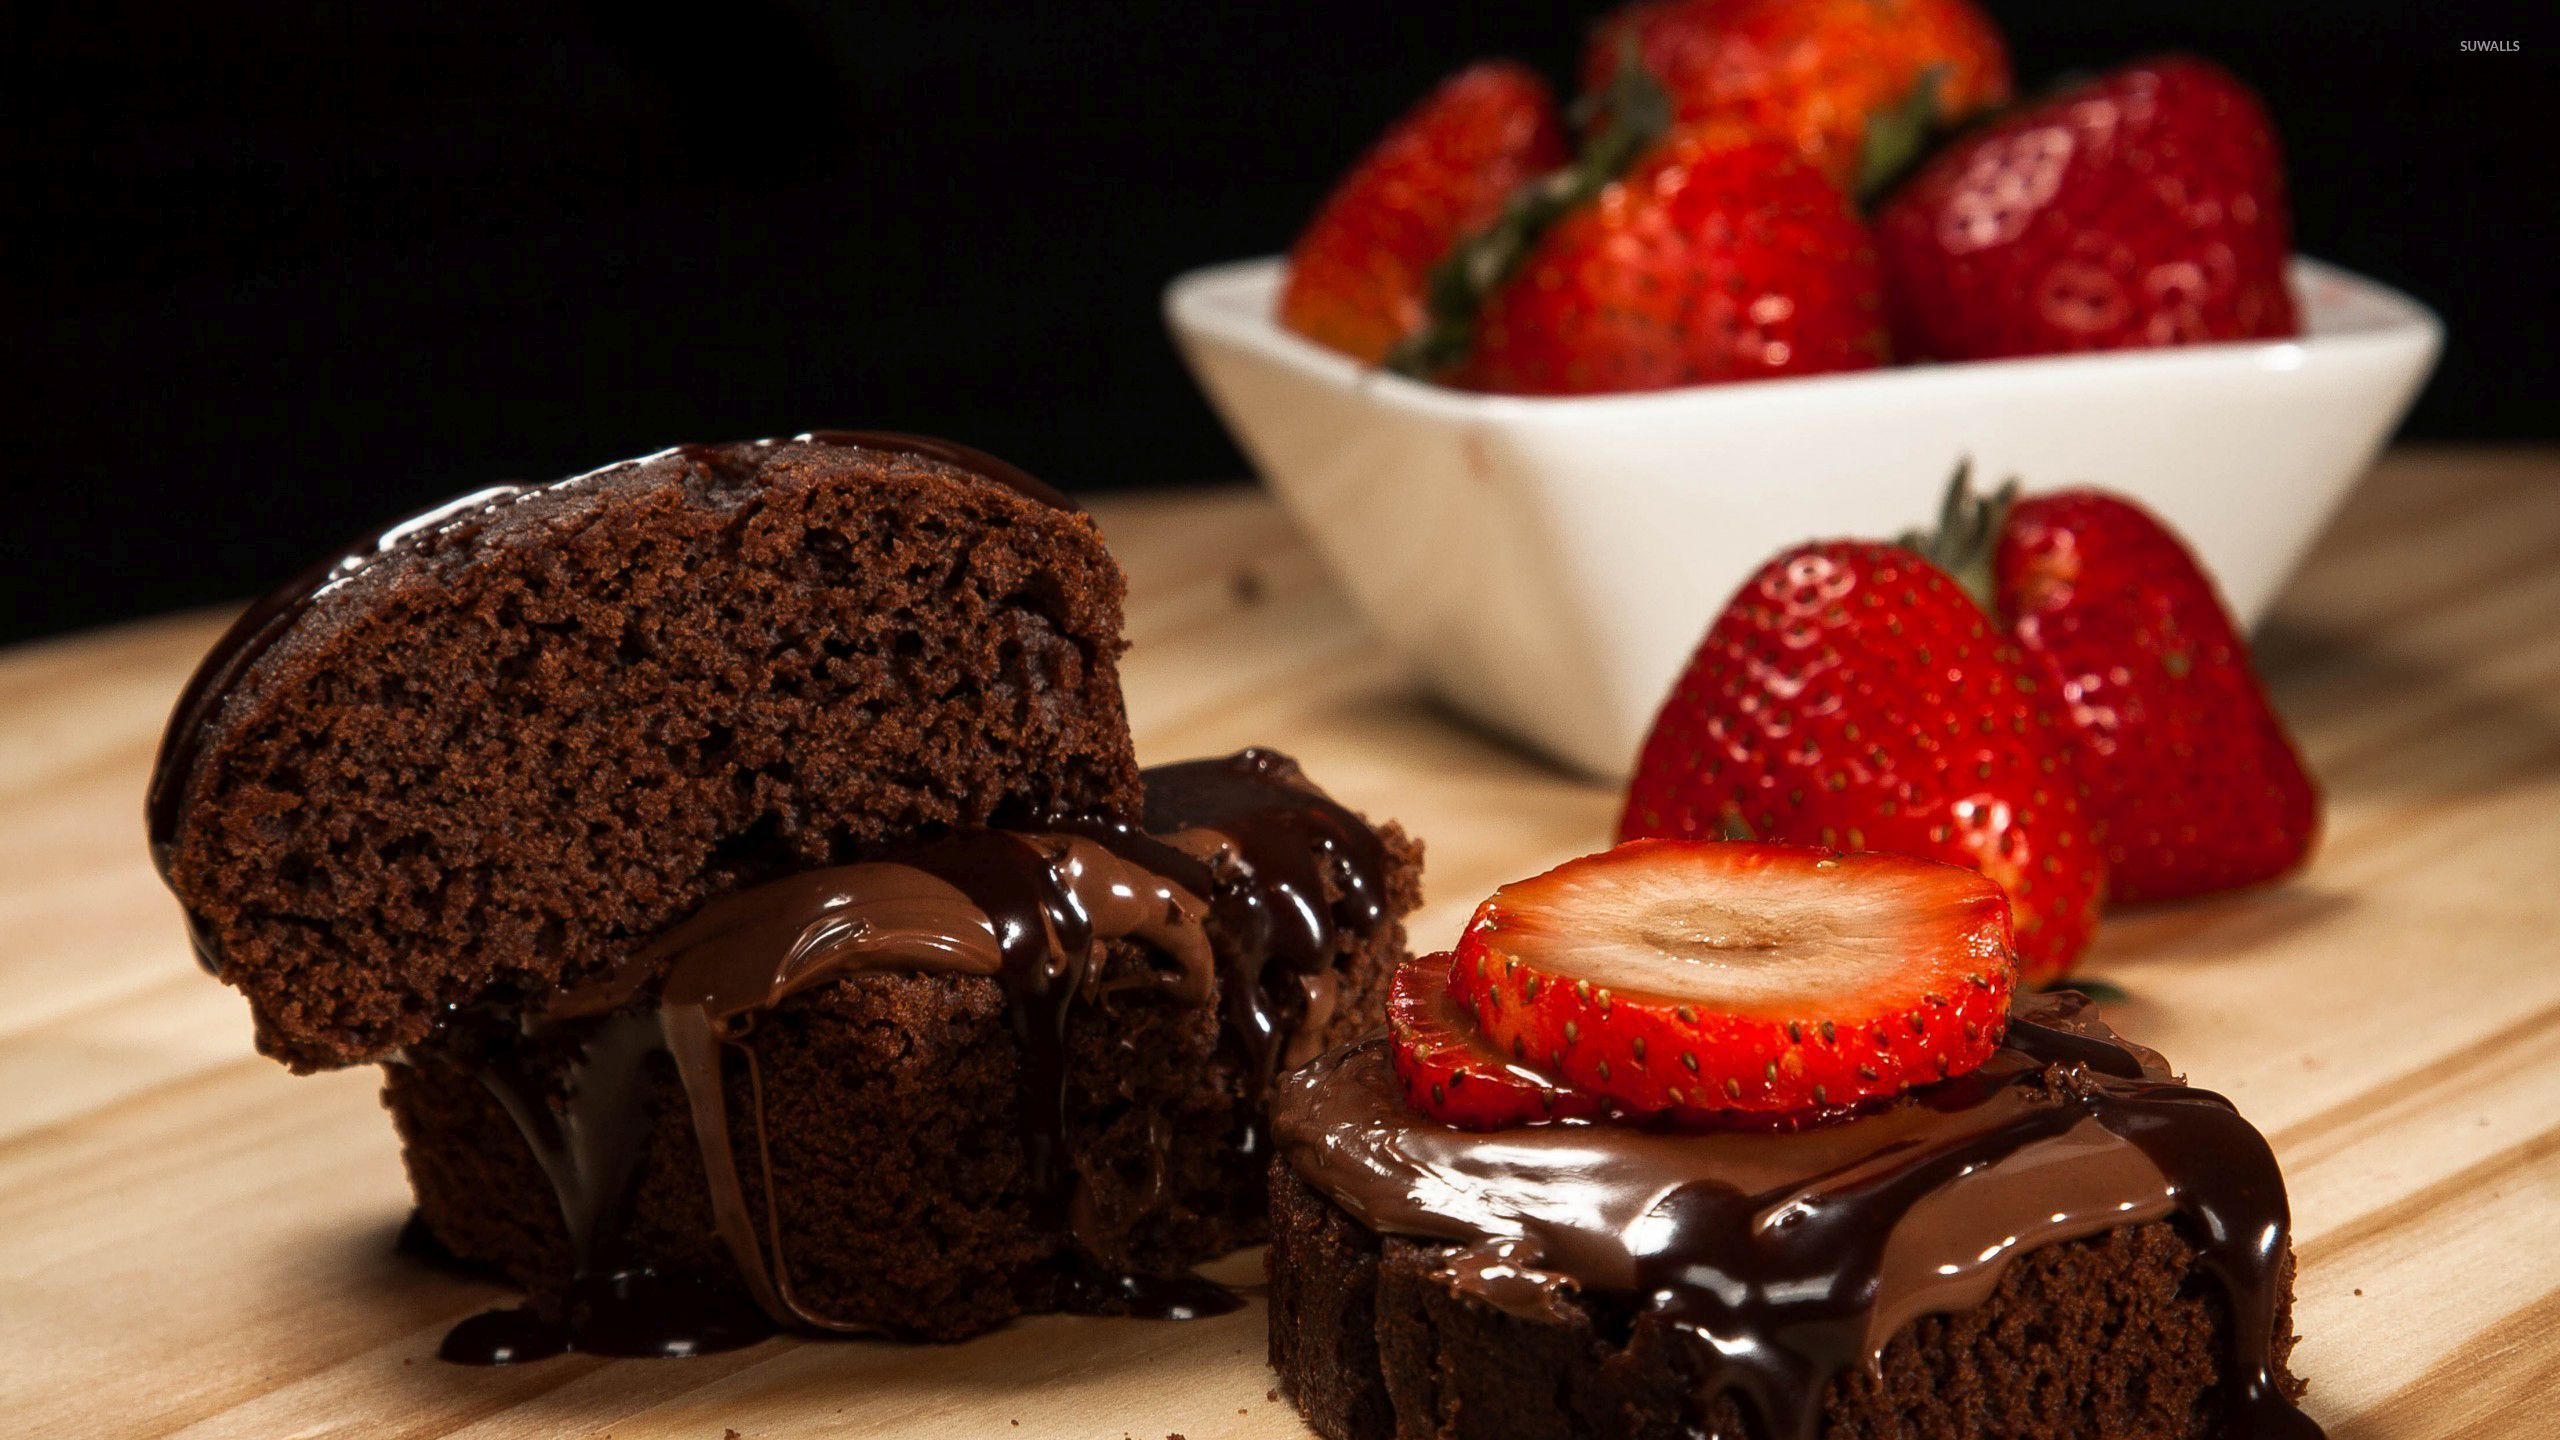 Fall Dessert Wallpaper Chocolate Cake And Strawberries Wallpaper Photography